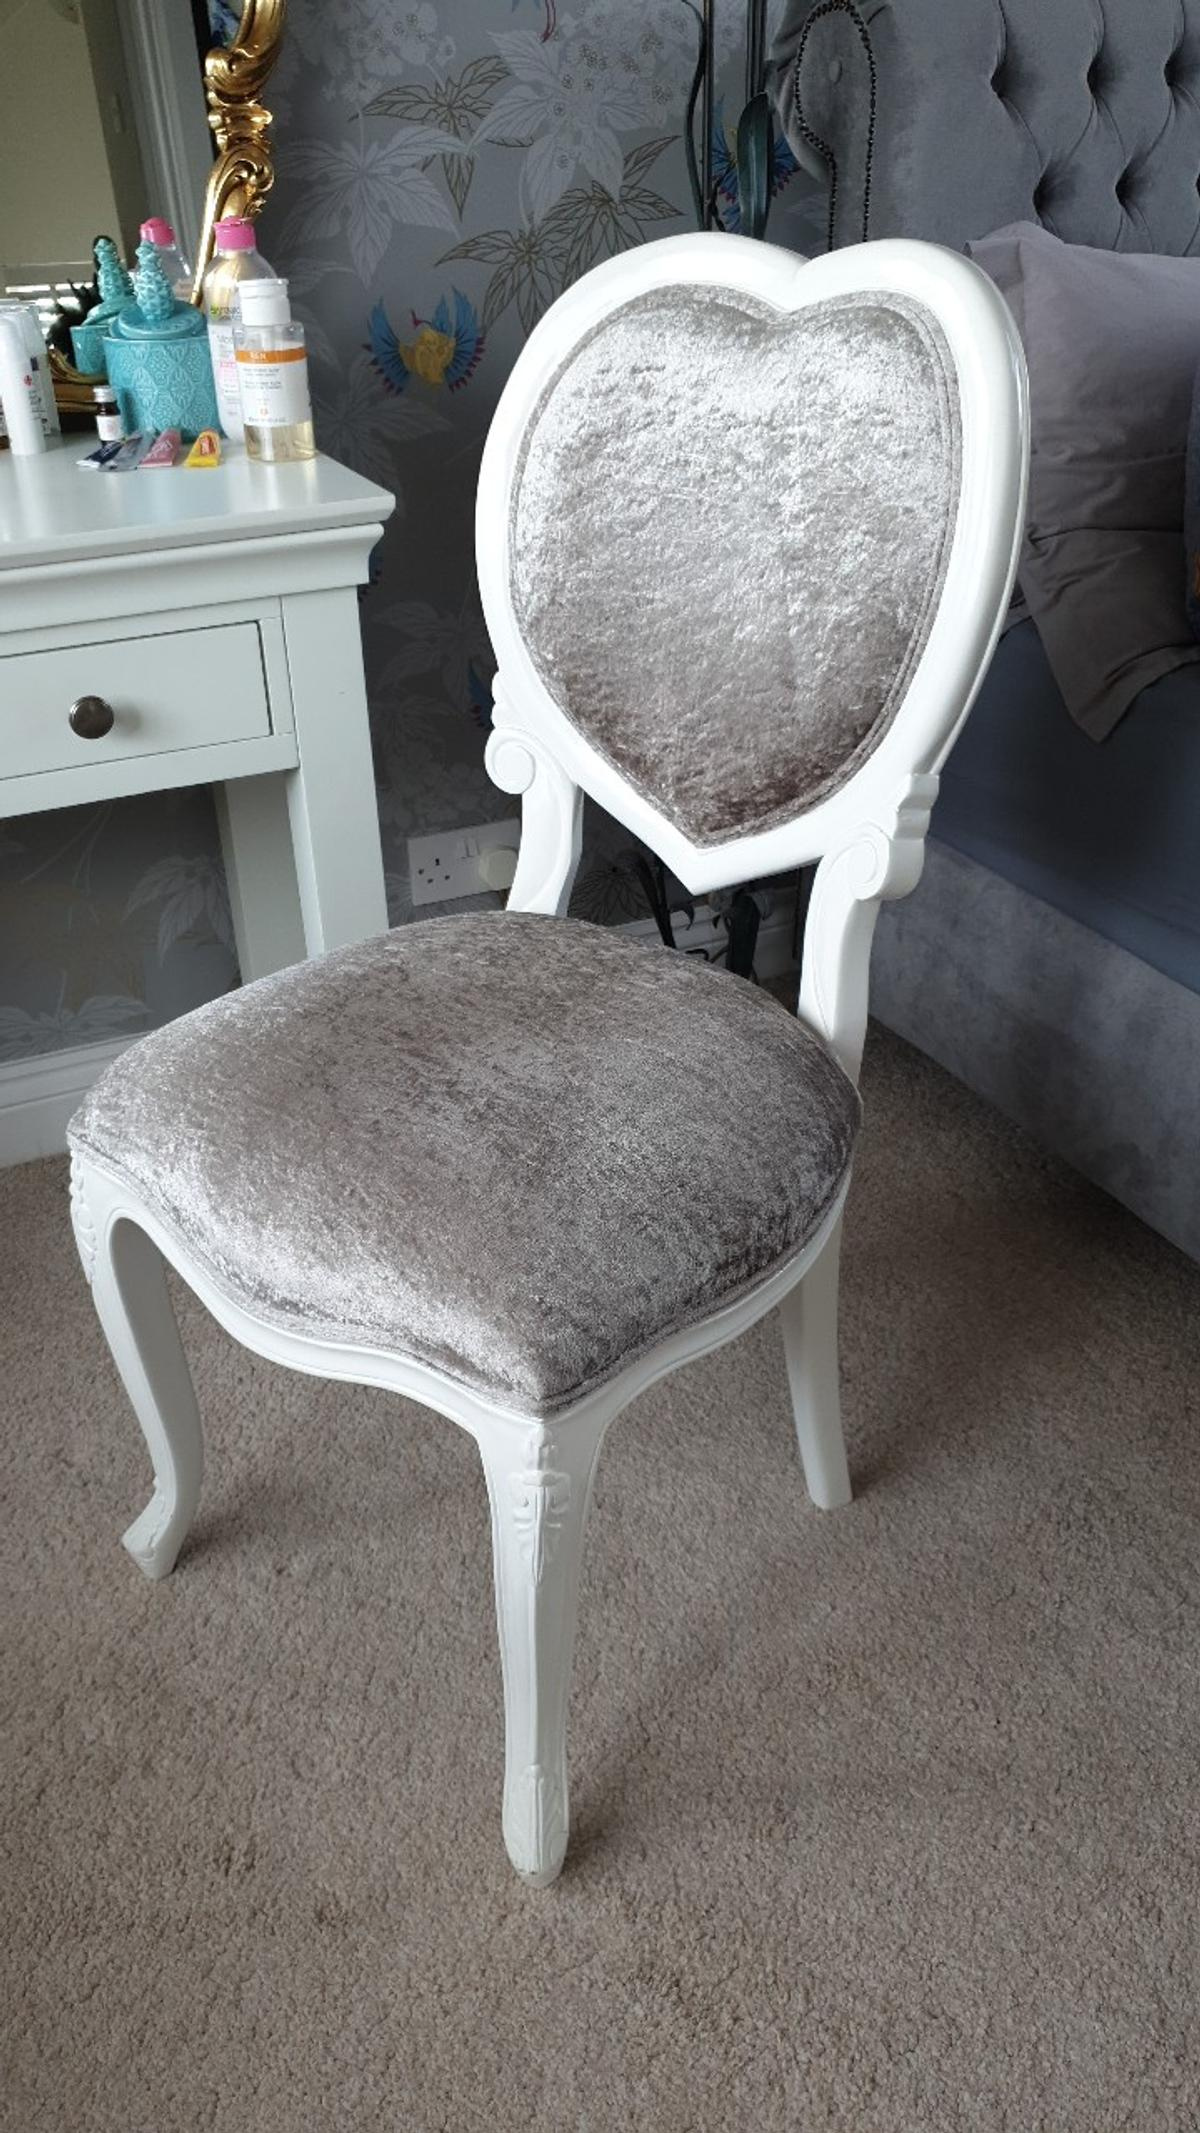 Dressing Table Chairs And Stools: BEDROOM/DRESSING TABLE CHAIR In RM14 Havering For £65.00